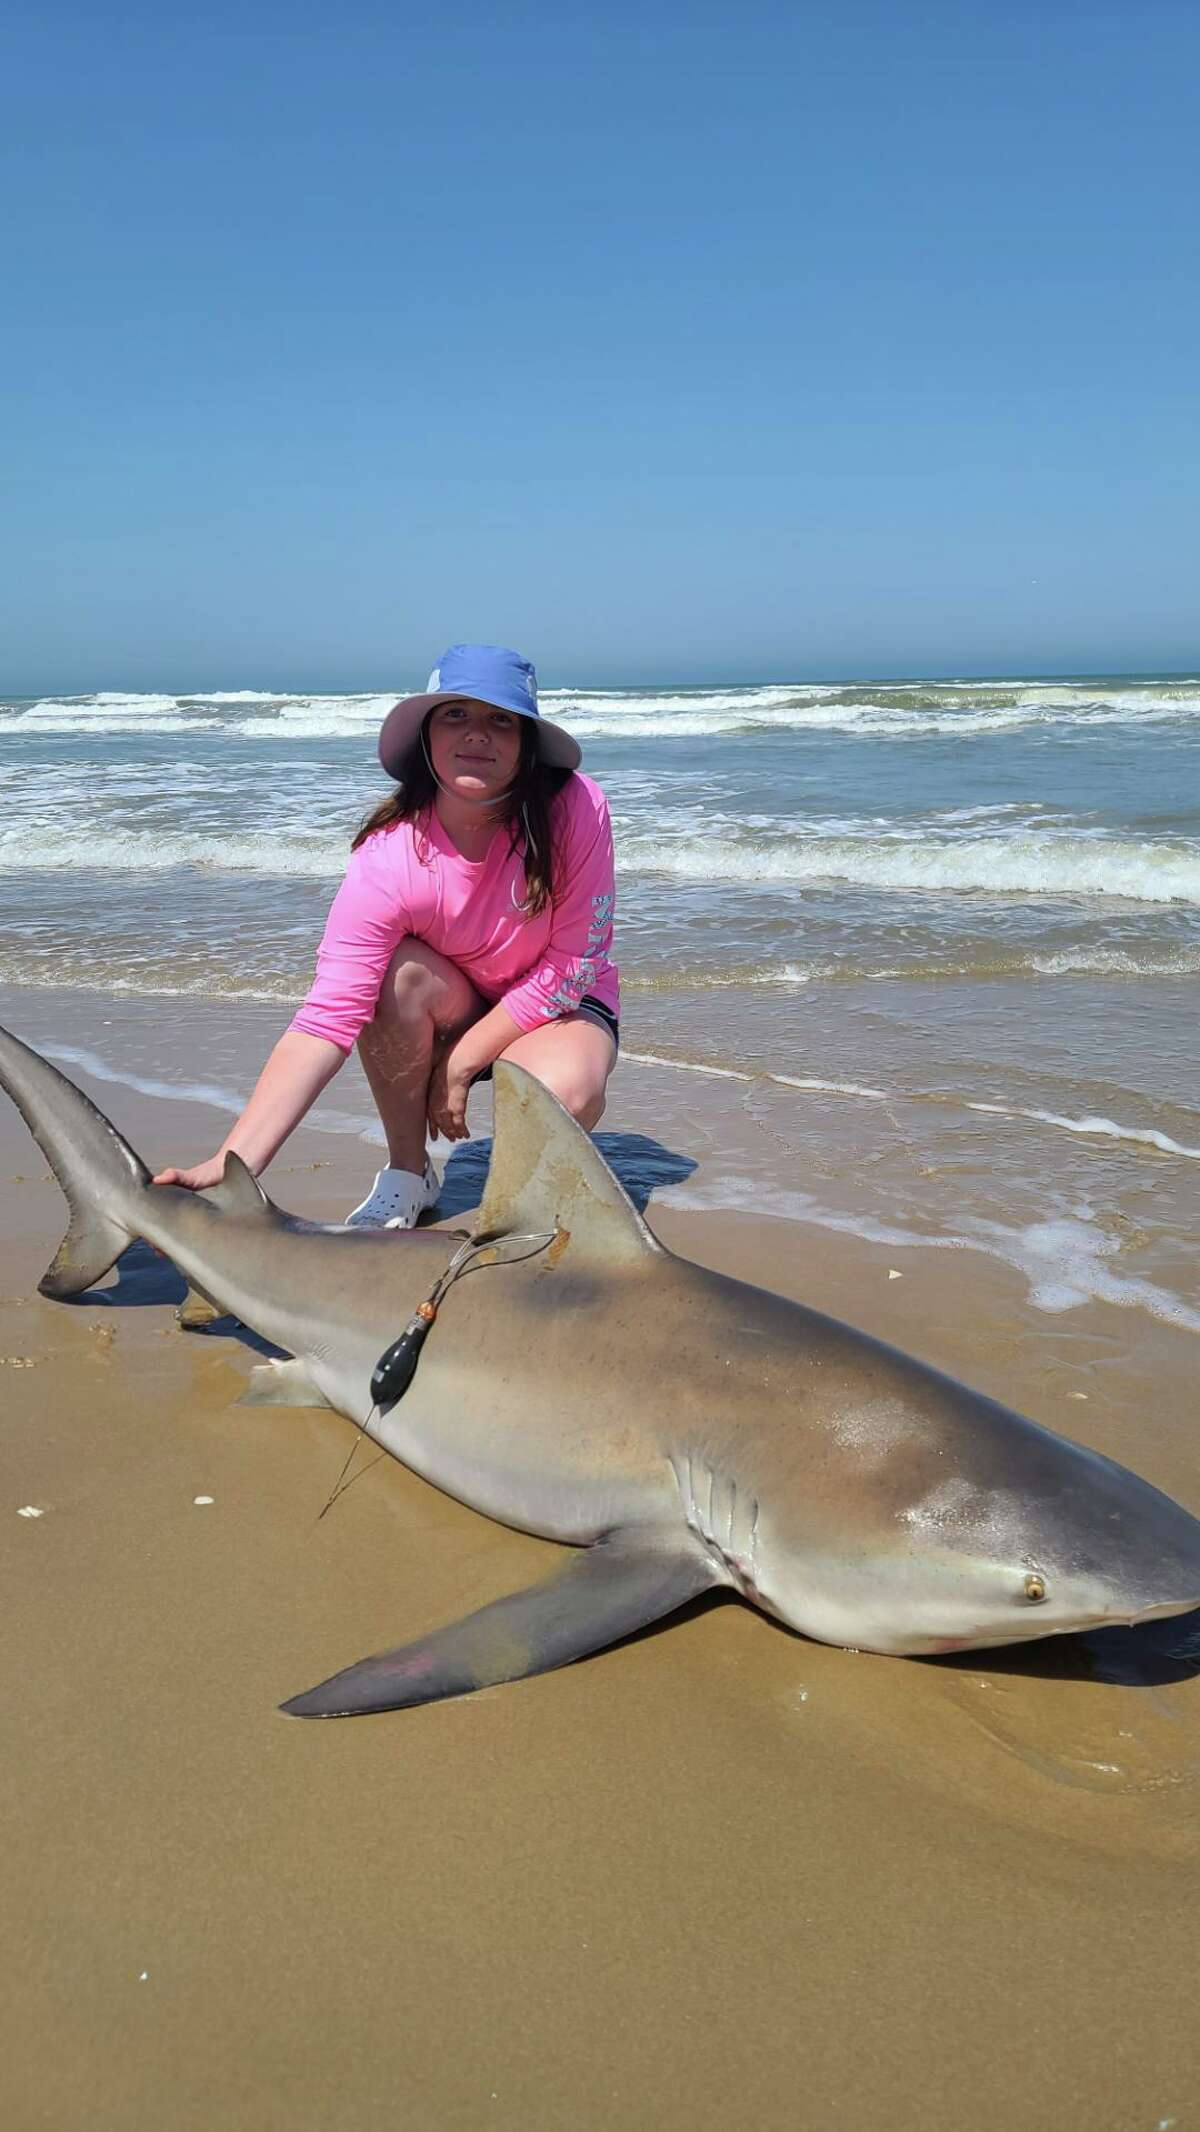 Emily Davis, 13, of Conroe managed to reel in a 6 foot, 4 inch Bull Shark at Padre Island National Seashore on Saturday.